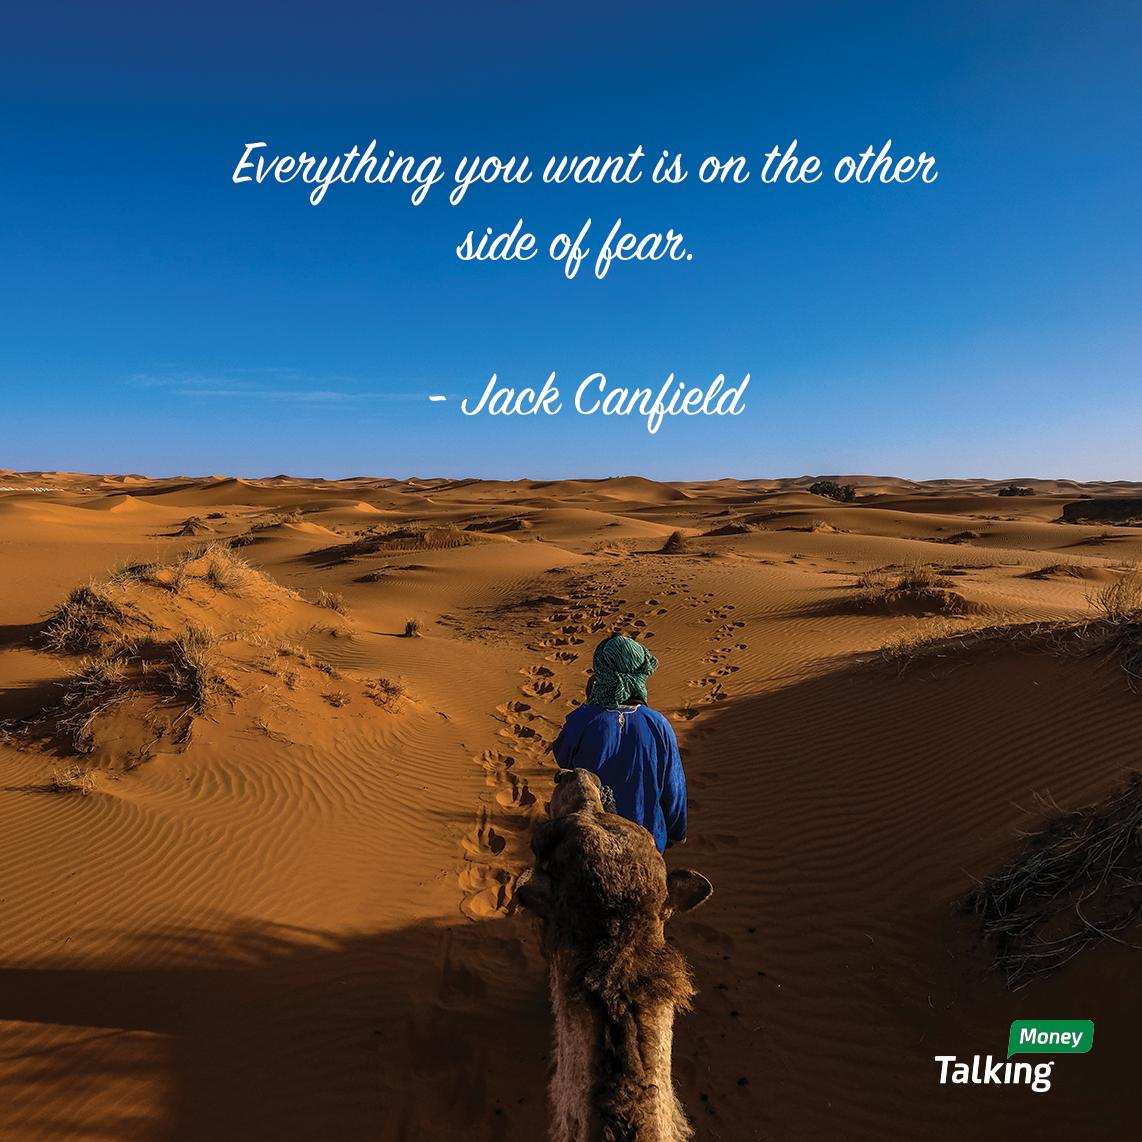 You have nothing to #fear but fear itself. #QuoteoftheDay #MorningMotivation <br>http://pic.twitter.com/W1mq5bfLeL